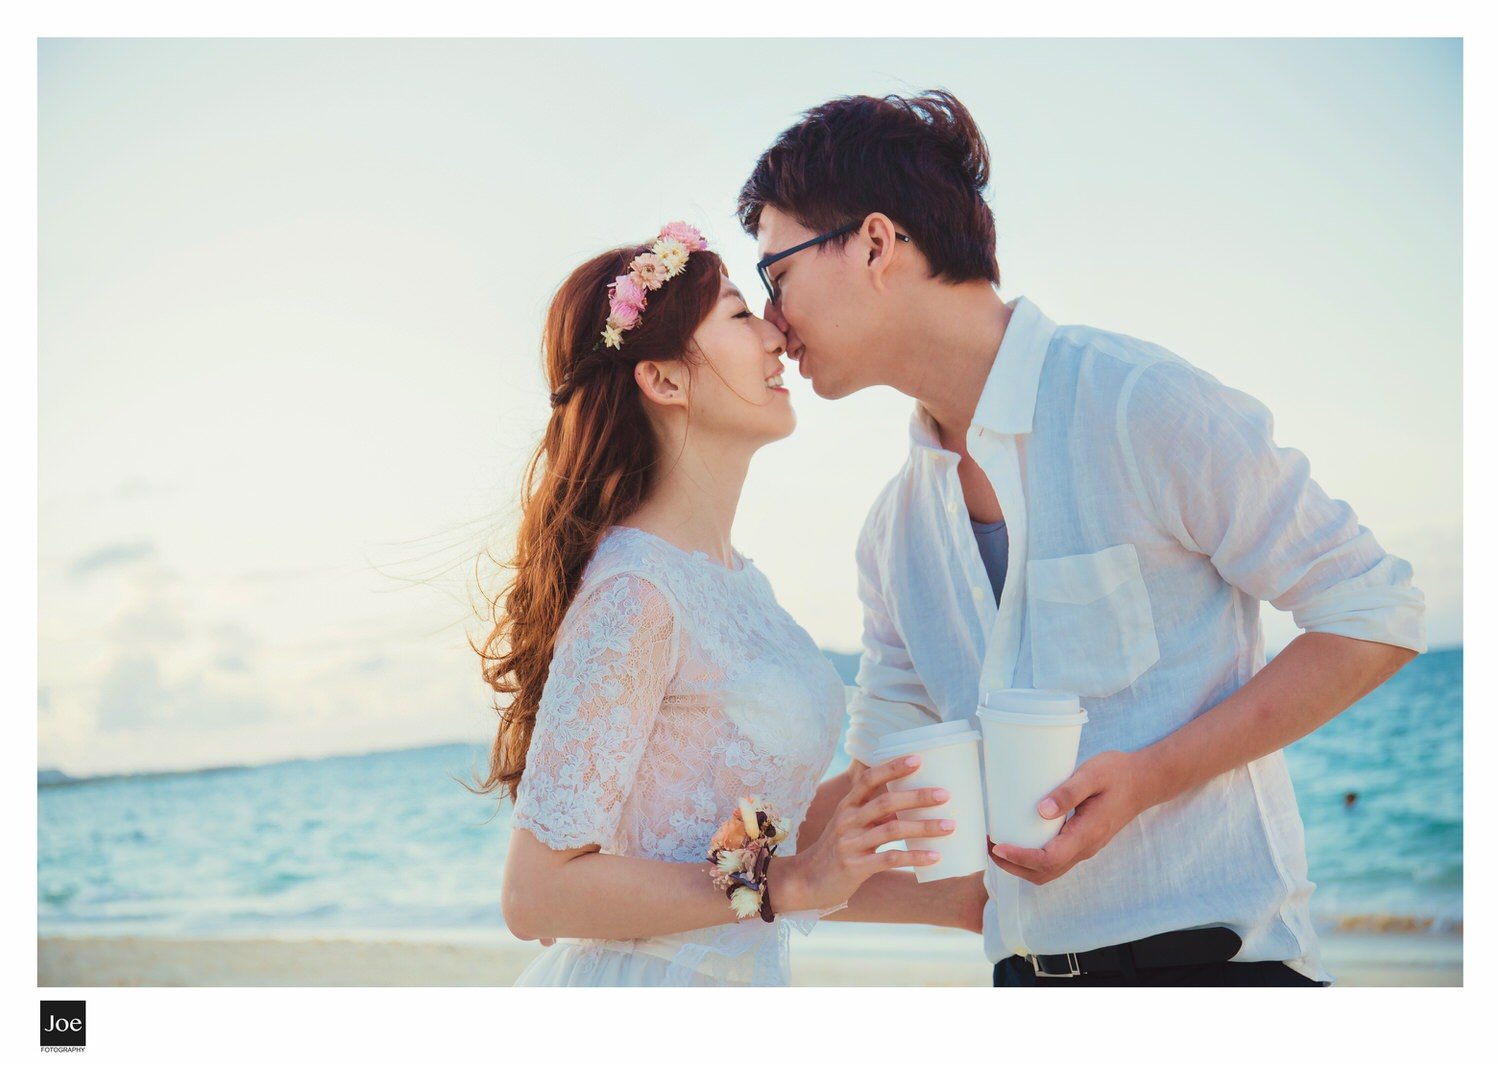 051-lanikai-beach-hawaii-pre-wedding-tiffany-tony-joe-fotography.jpg